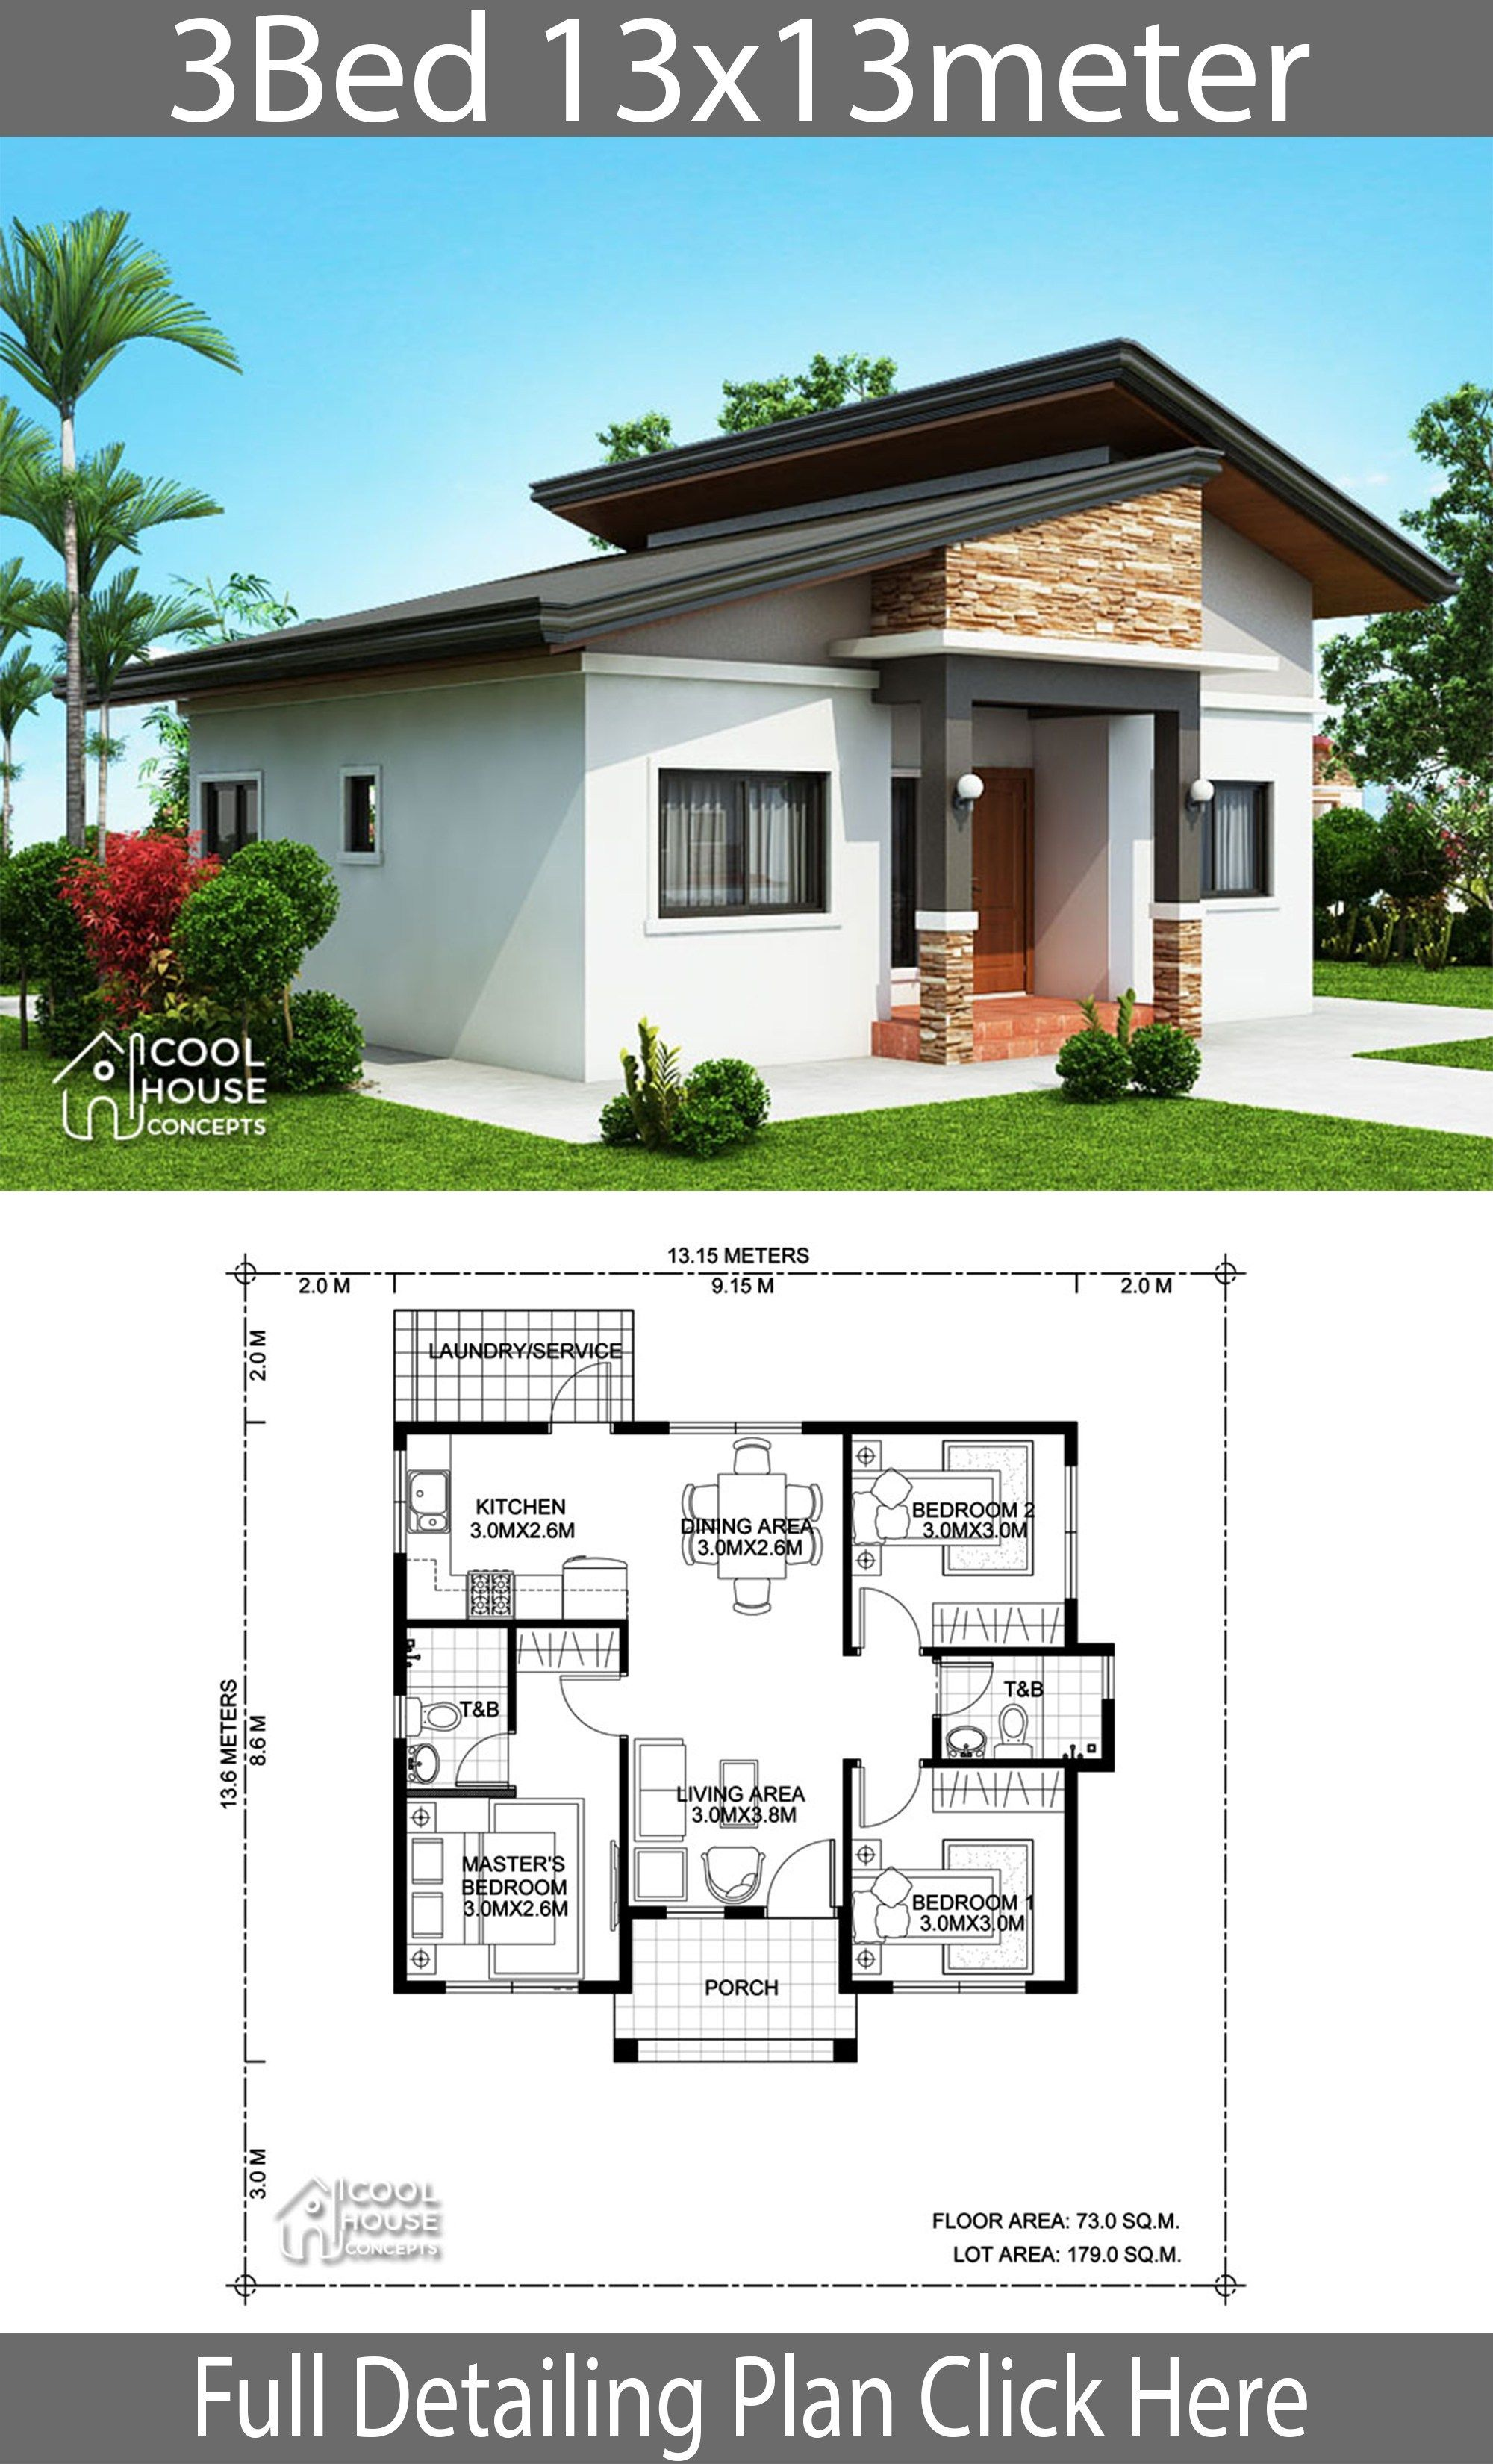 Home Design Plan 13x13m With 3 Bedrooms Home Design With Plan Simple House Design Cool House Designs Bungalow House Design